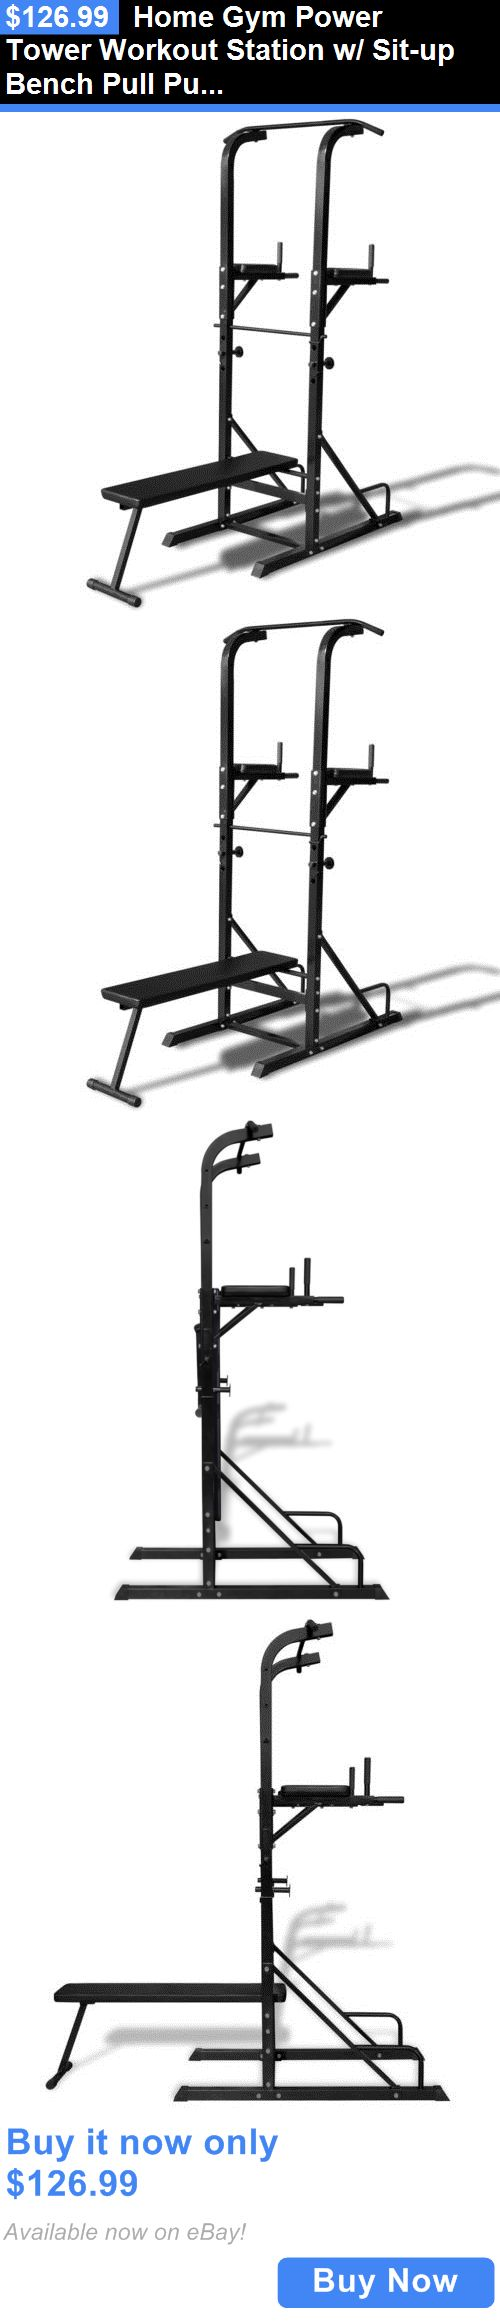 Other Weight Management: Home Gym Power Tower Workout Station W/ Sit-Up Bench Pull Push Chin-Up Dip Abs BUY IT NOW ONLY: $126.99